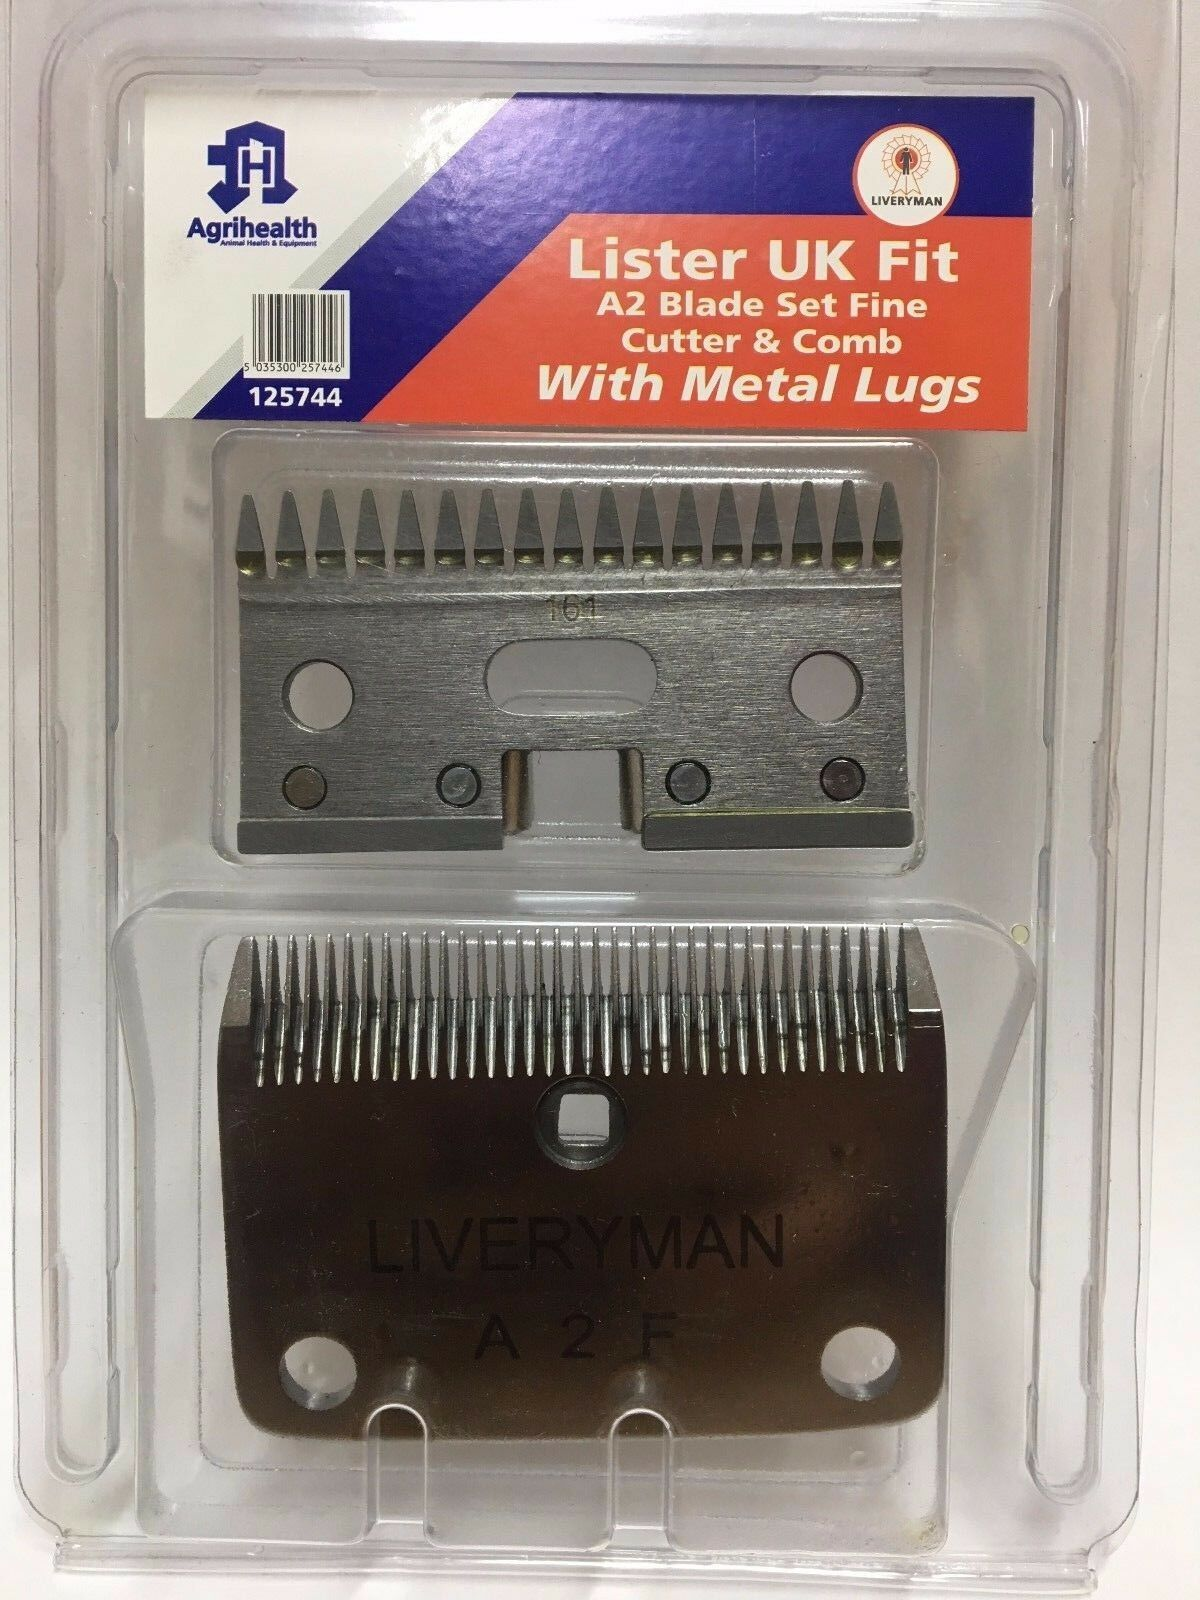 LISTER A2 Medium or Fine Clipper Blades Made by Liveryman - Star Laser Liberty